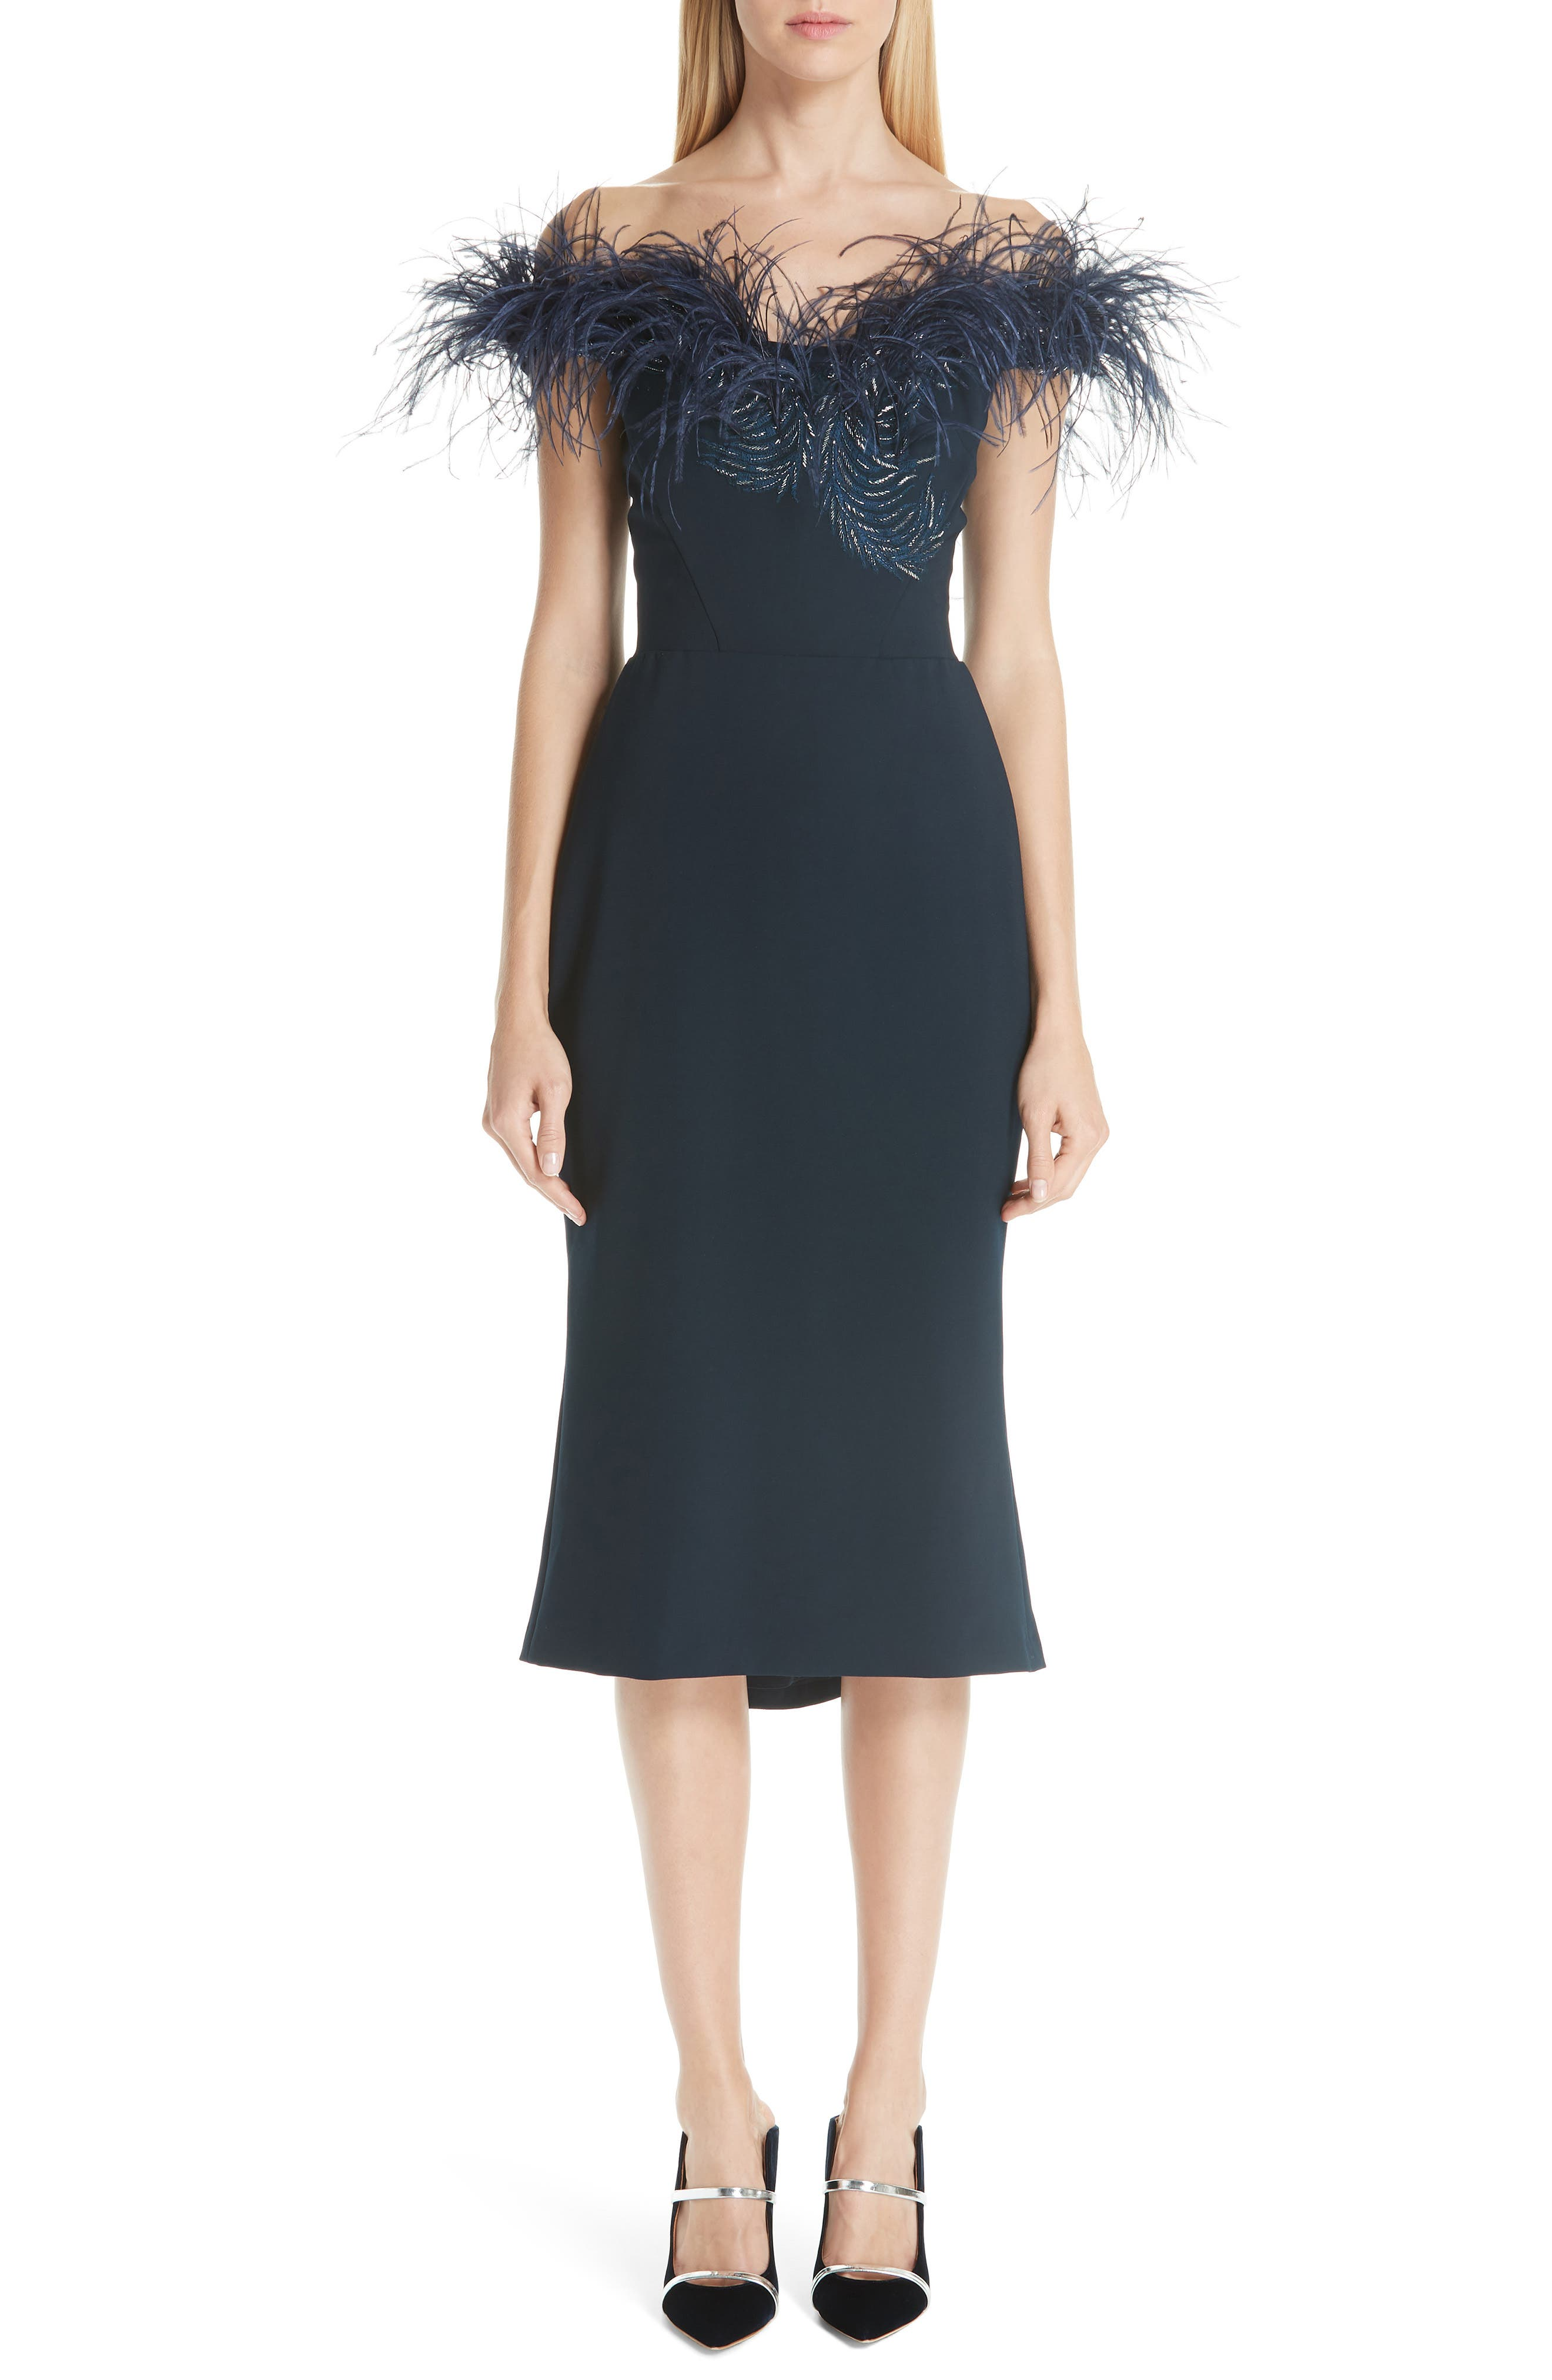 MARCHESA, Off the Shoulder Feather Cocktail Dress, Main thumbnail 1, color, NAVY